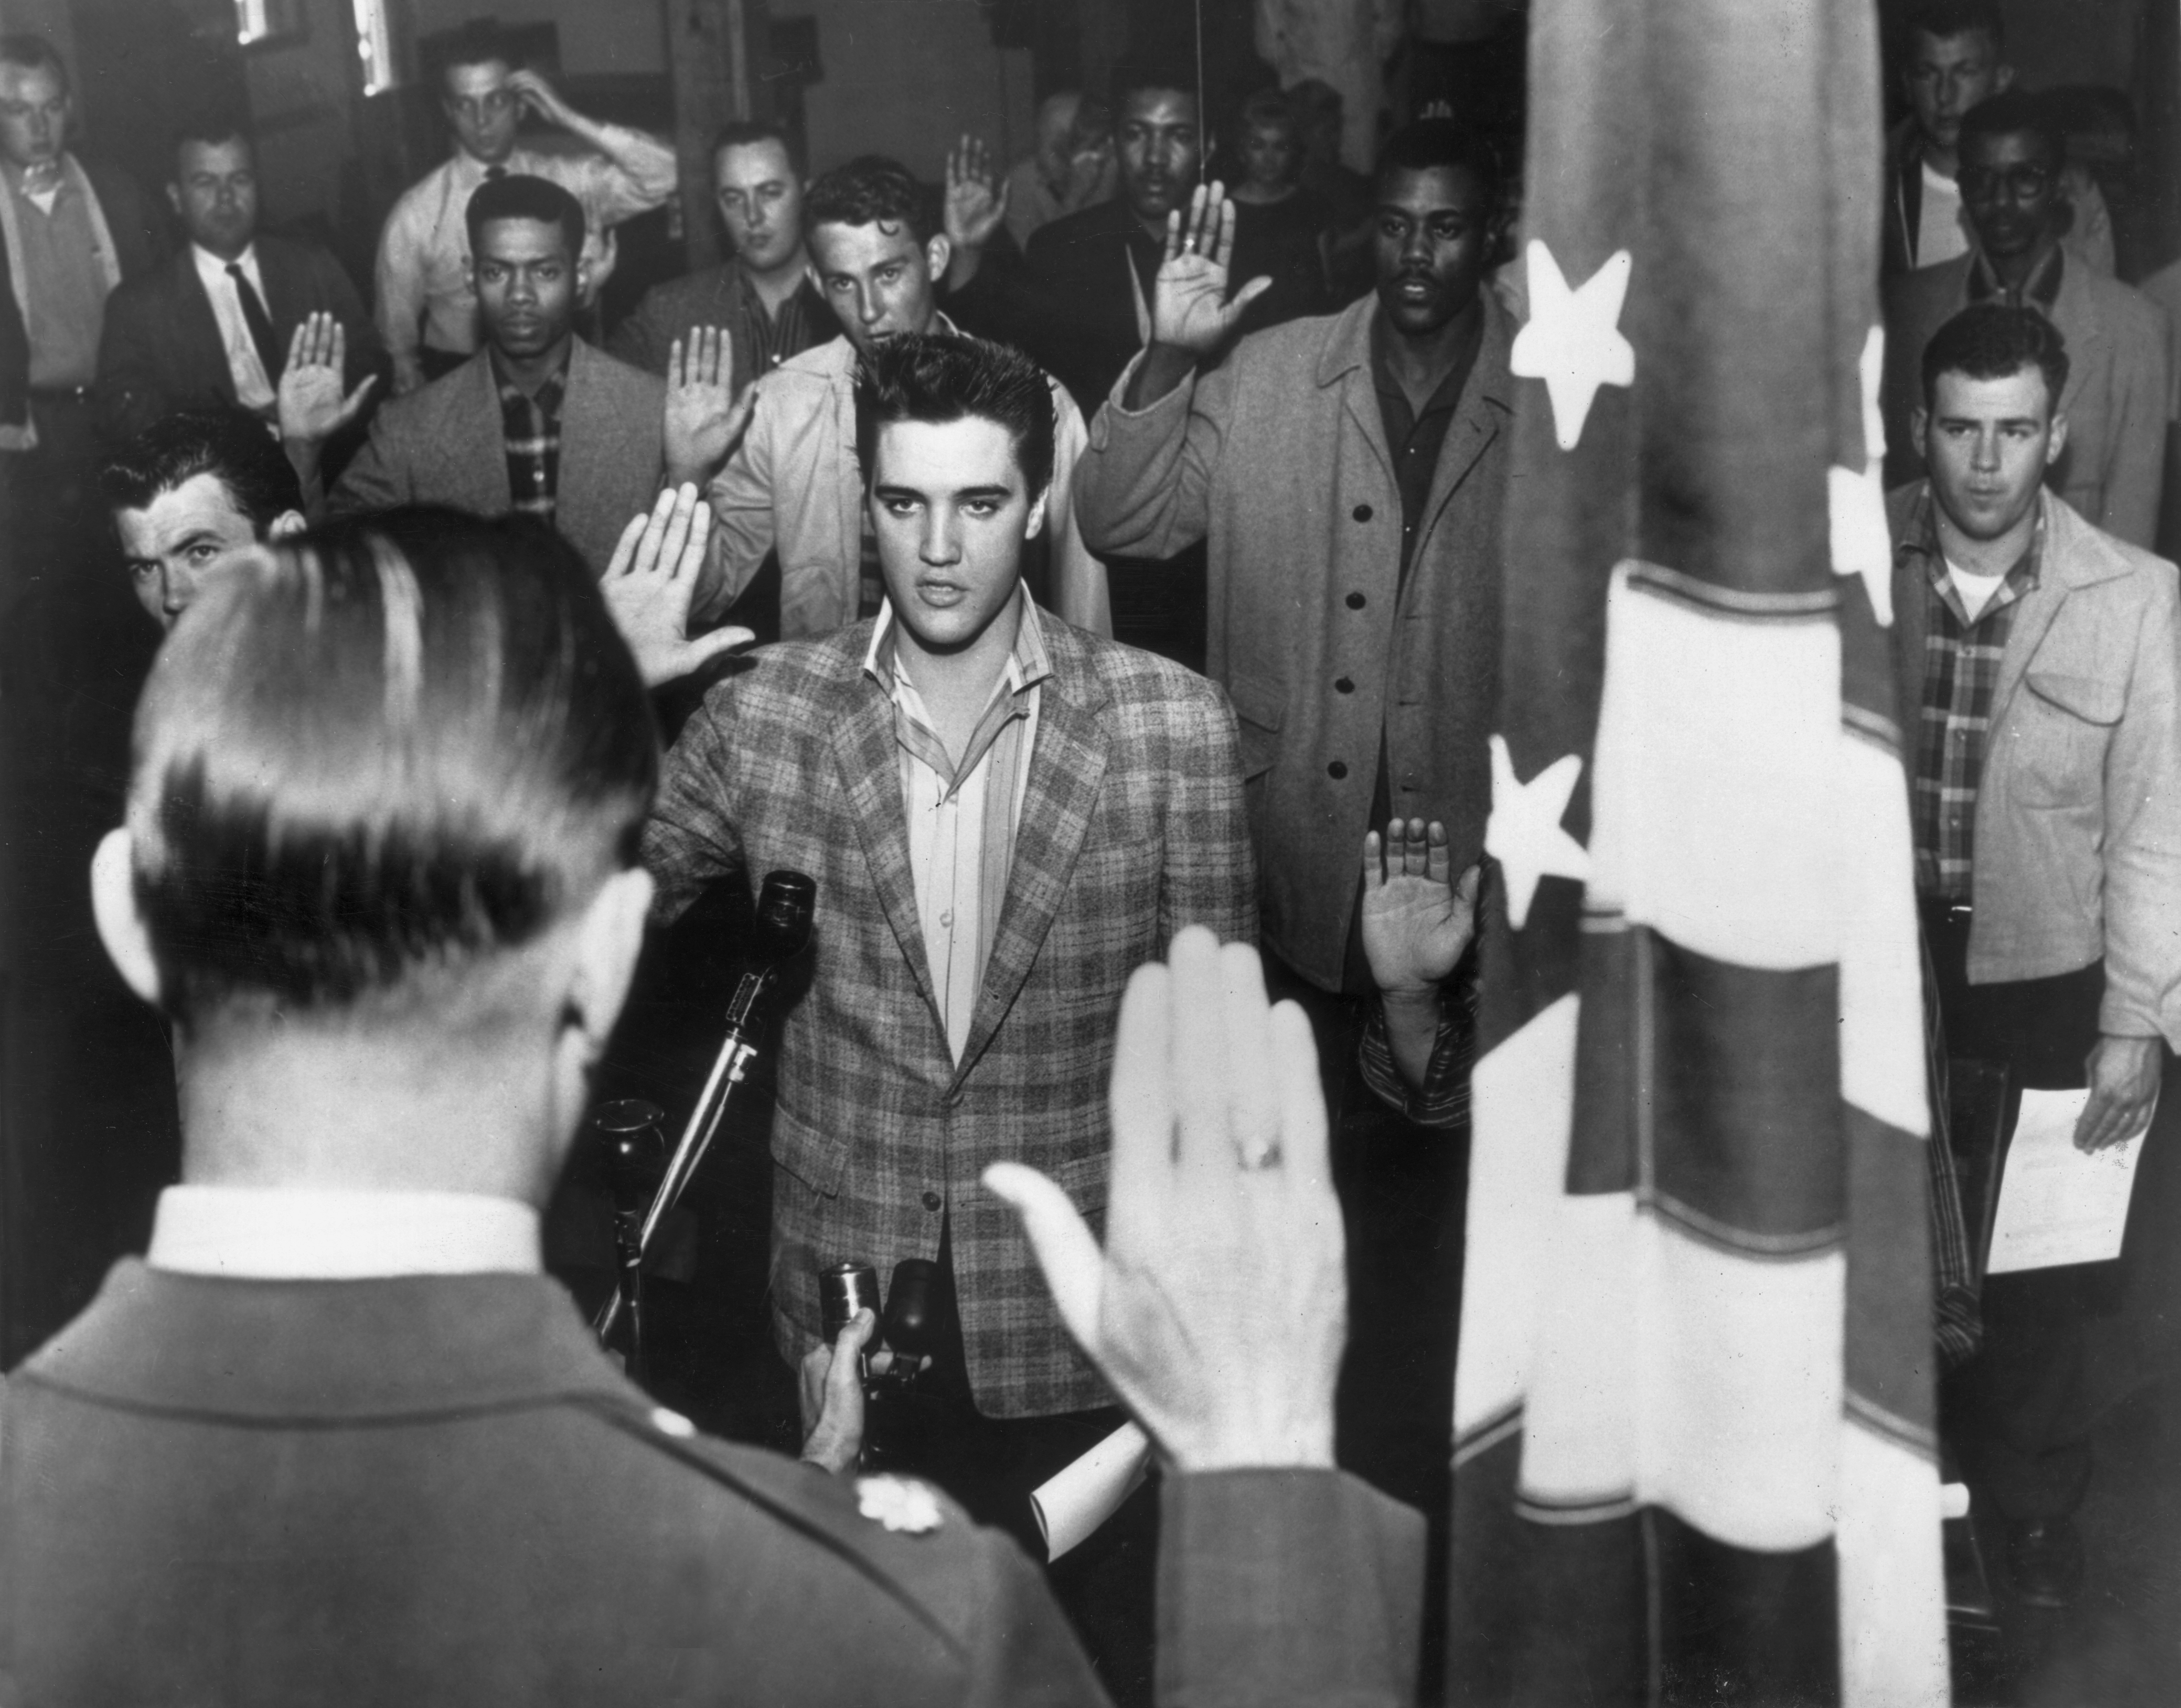 Elvis Presley stands with a group of young men at an induction center, raising their right hands as they are sworn into the United States Army, in 1958.